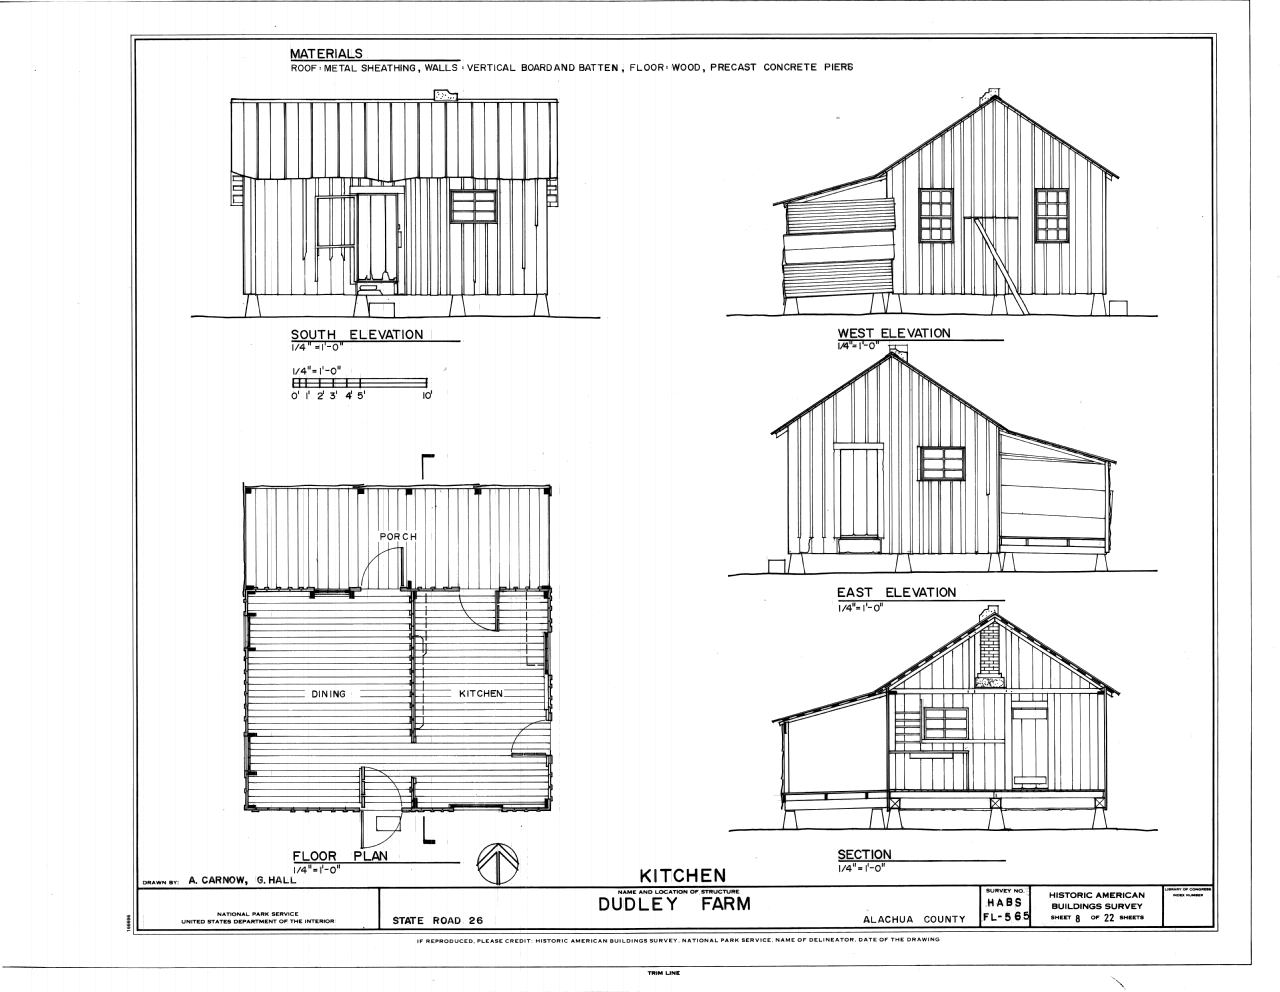 What Is Plan And Elevation : File kitchen elevations floor plan and section dudley